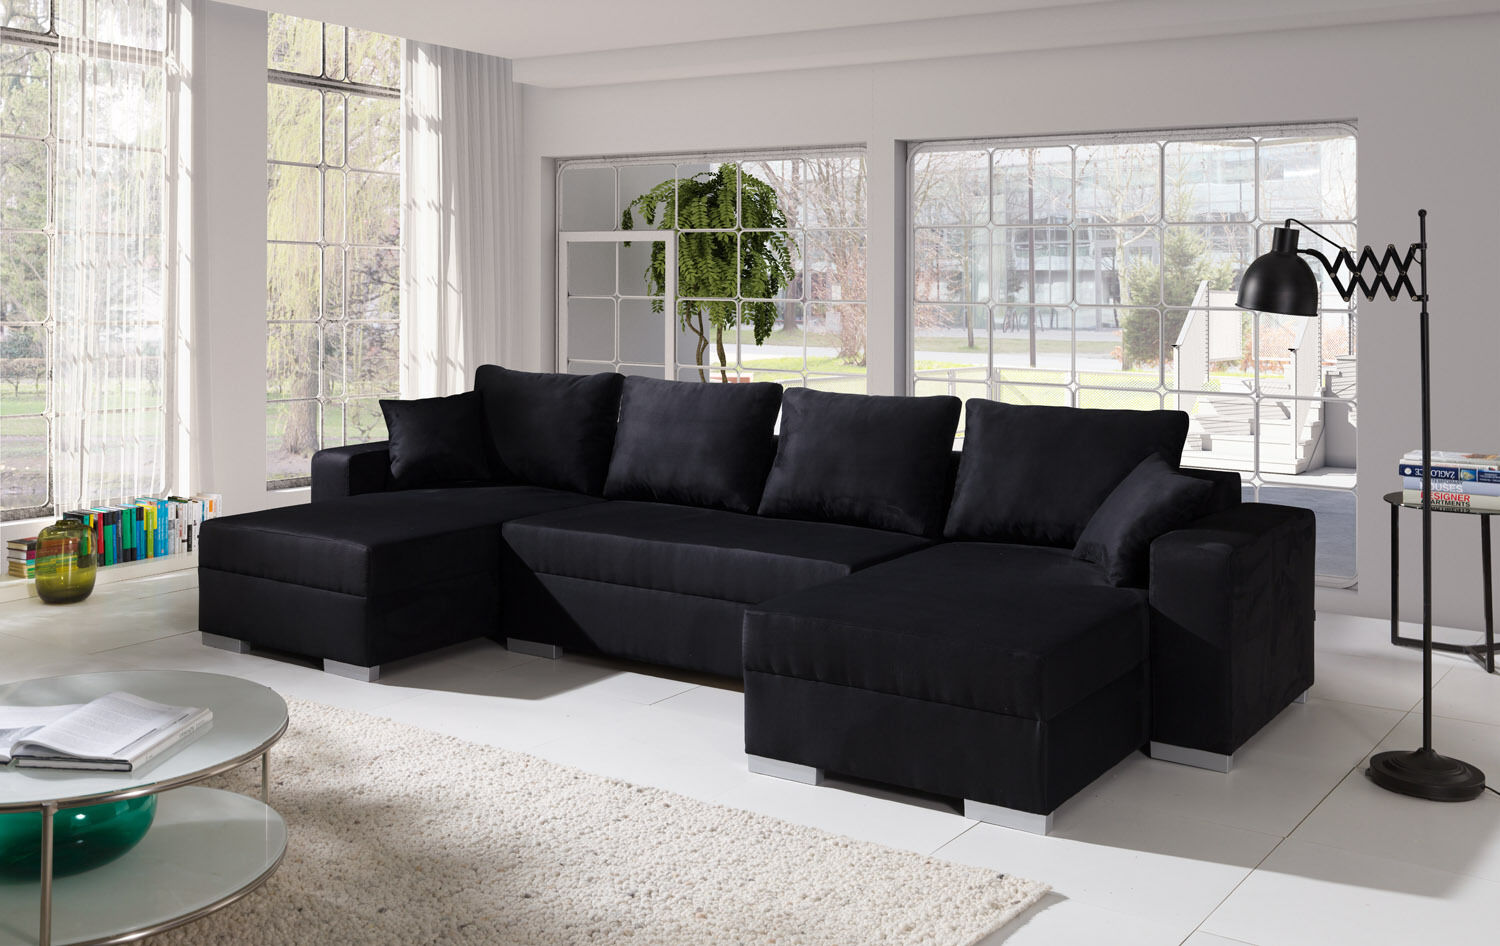 couch sofa couchgarnitur sofagarnitur u wohnlandschaft schlaffunktion 4112200 eur 499 00. Black Bedroom Furniture Sets. Home Design Ideas